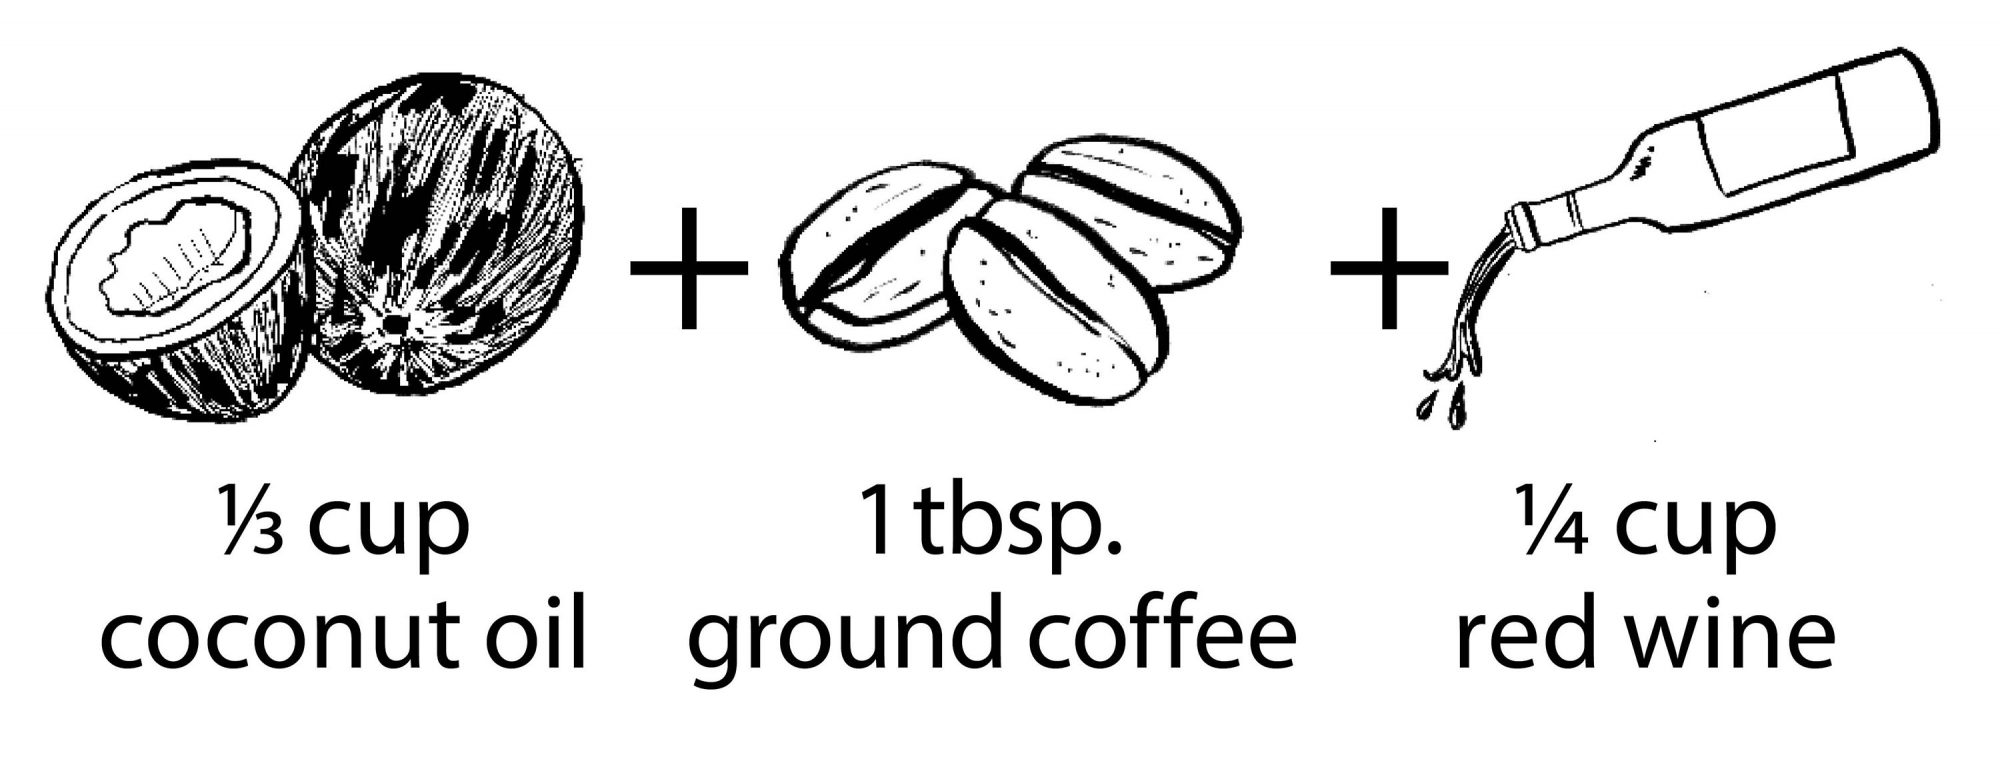 illustration of coconut oil ground coffee and red wine